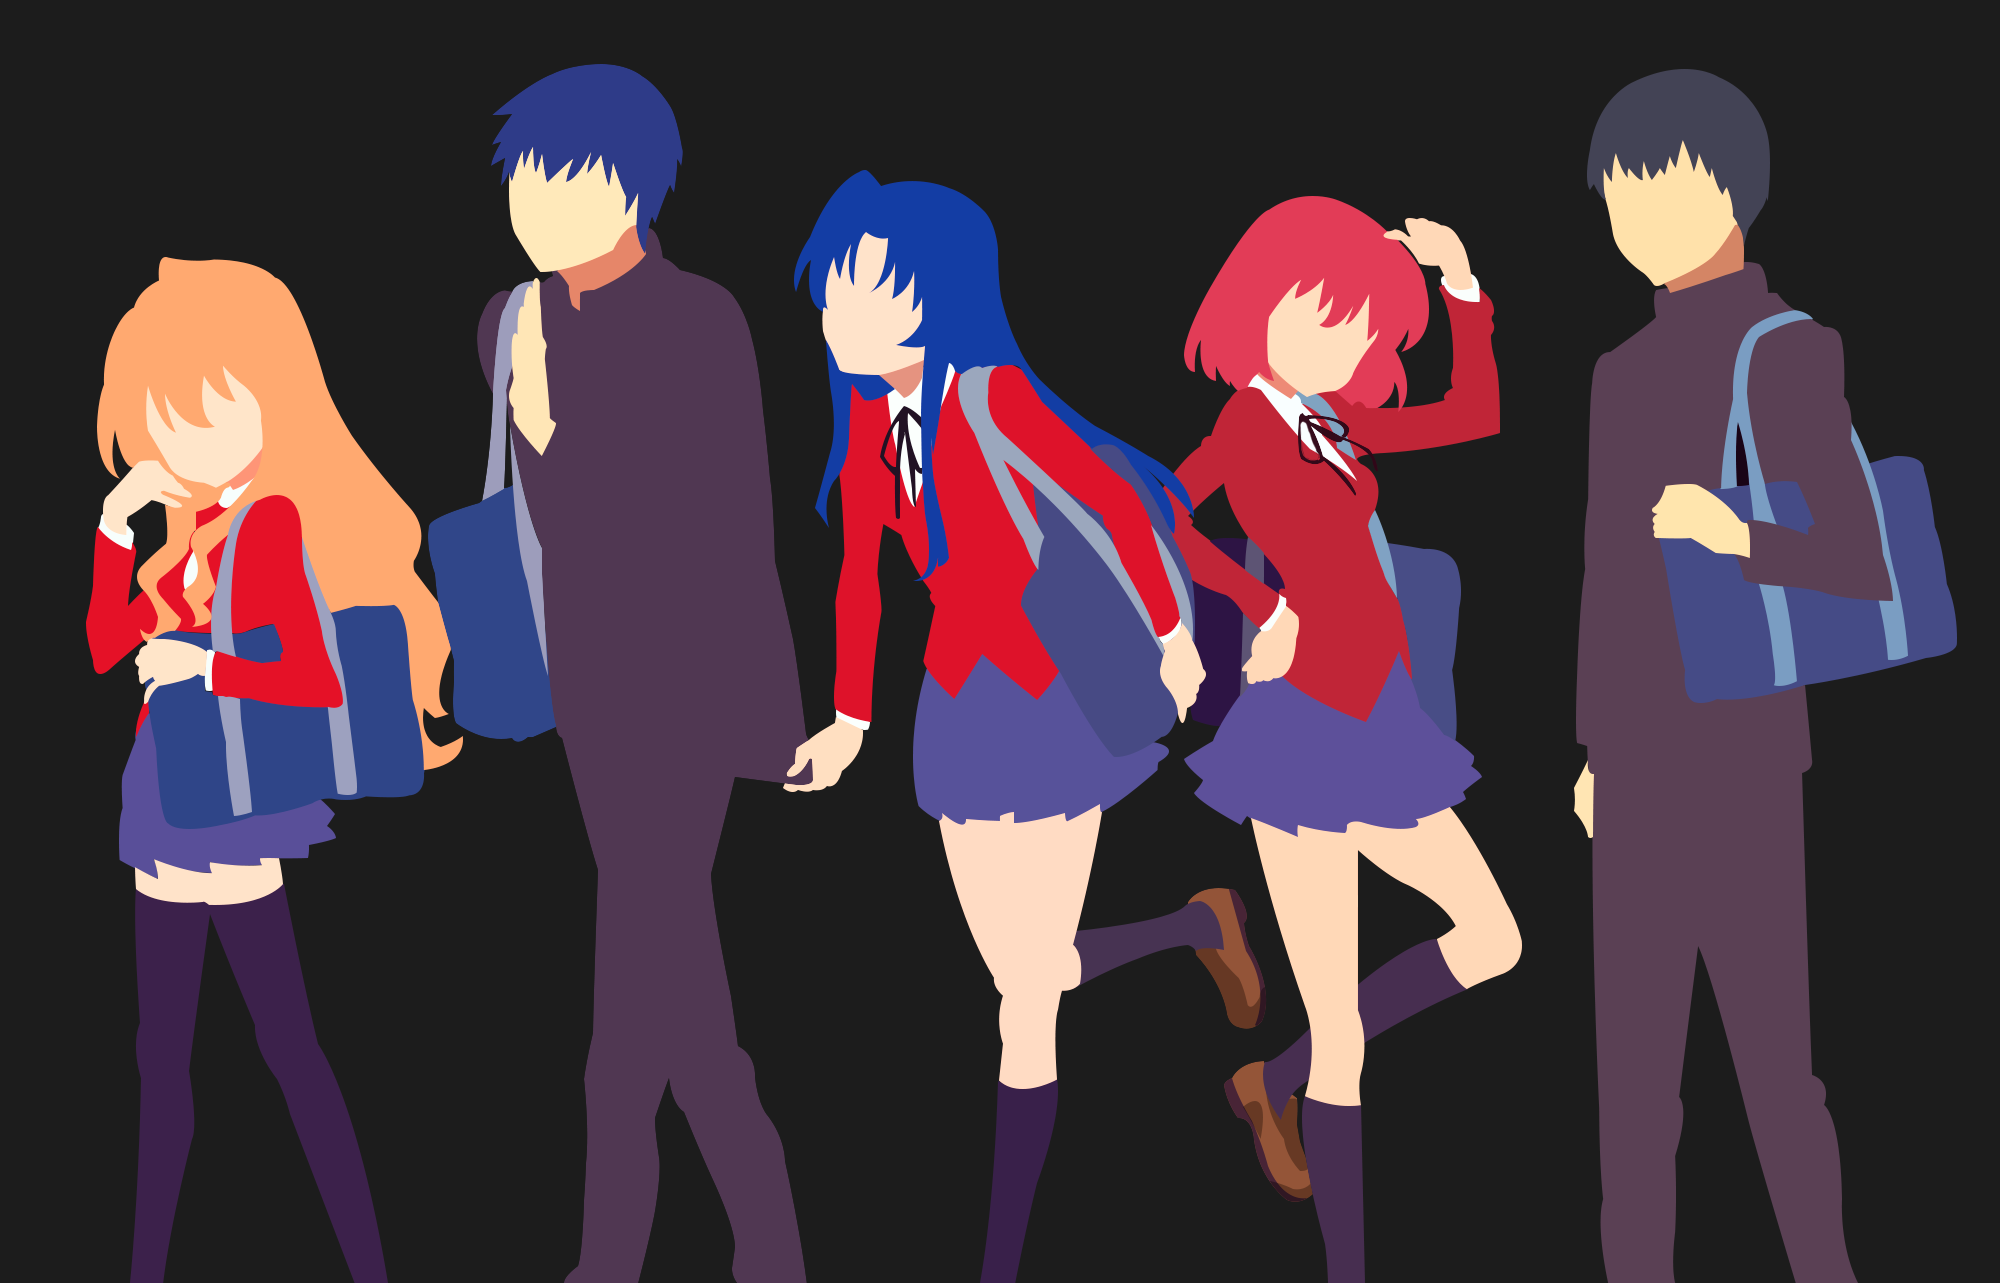 Mw All The Characters From Toradora Toradora Anime Anime Shows